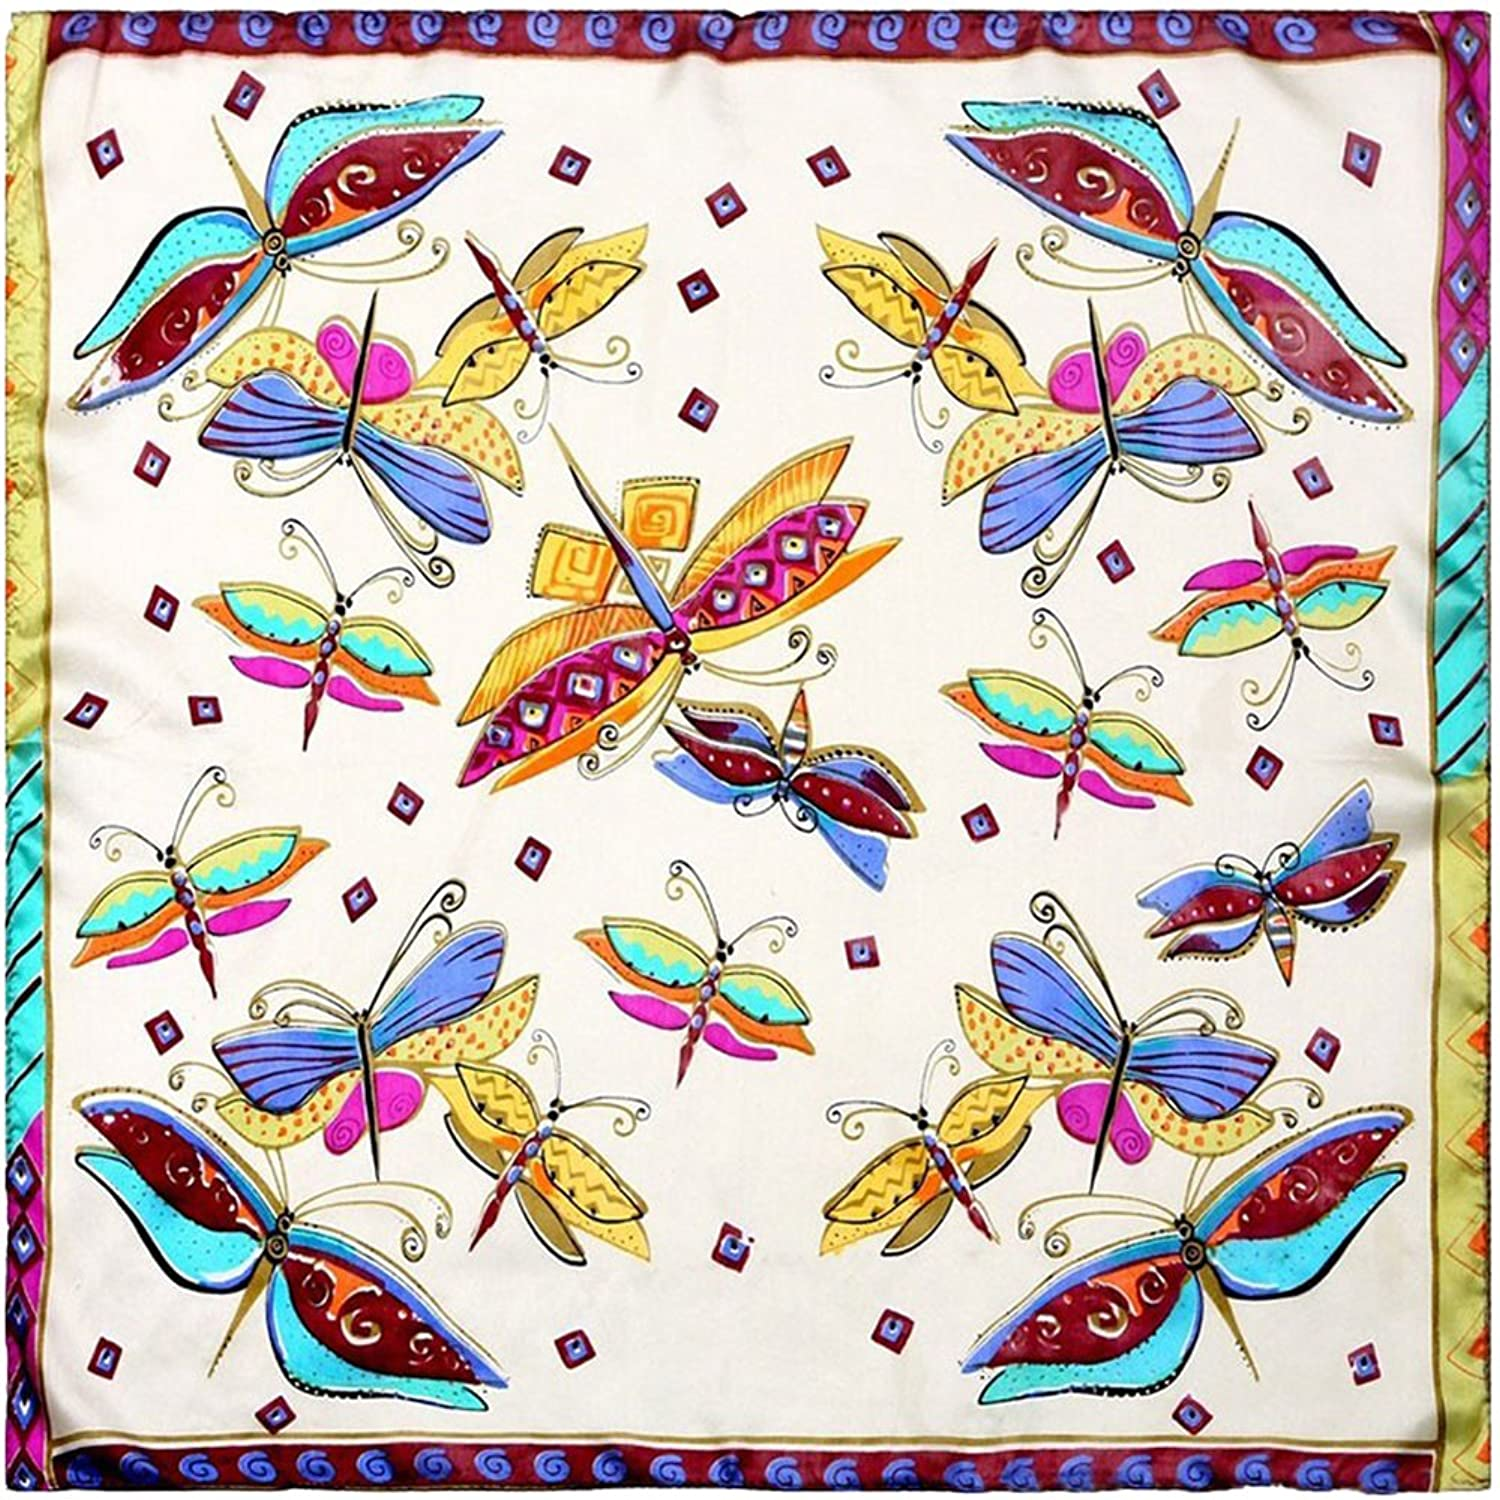 100% Silk Scarf Women Scarf Butterfly Neckerchief Print Small Square Silk Scarf